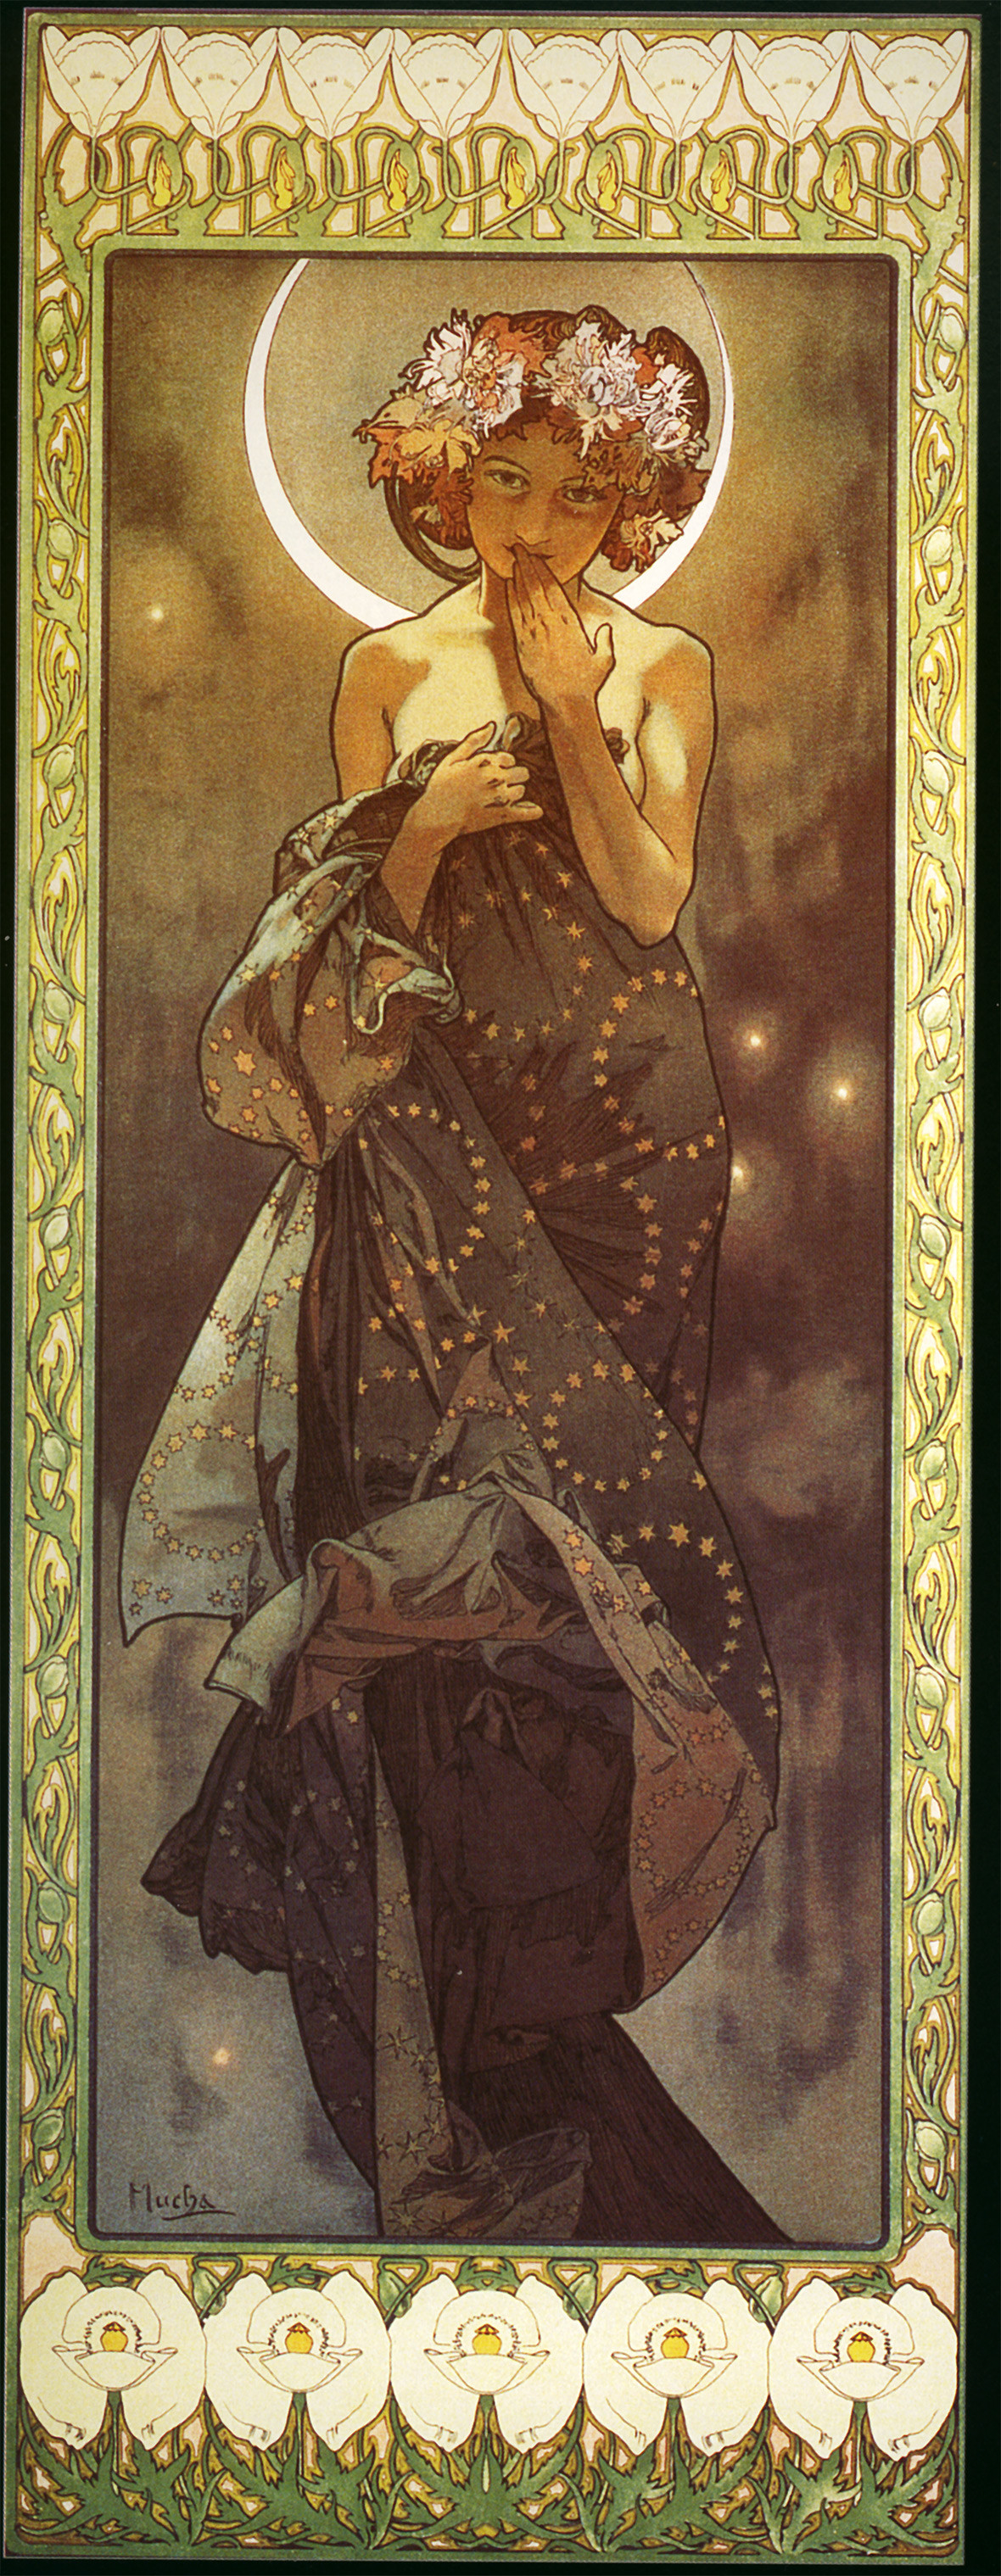 1180x3038 28 June 2013 at 1180 × 3038 in Alfons Mucha's Art Nouveau works